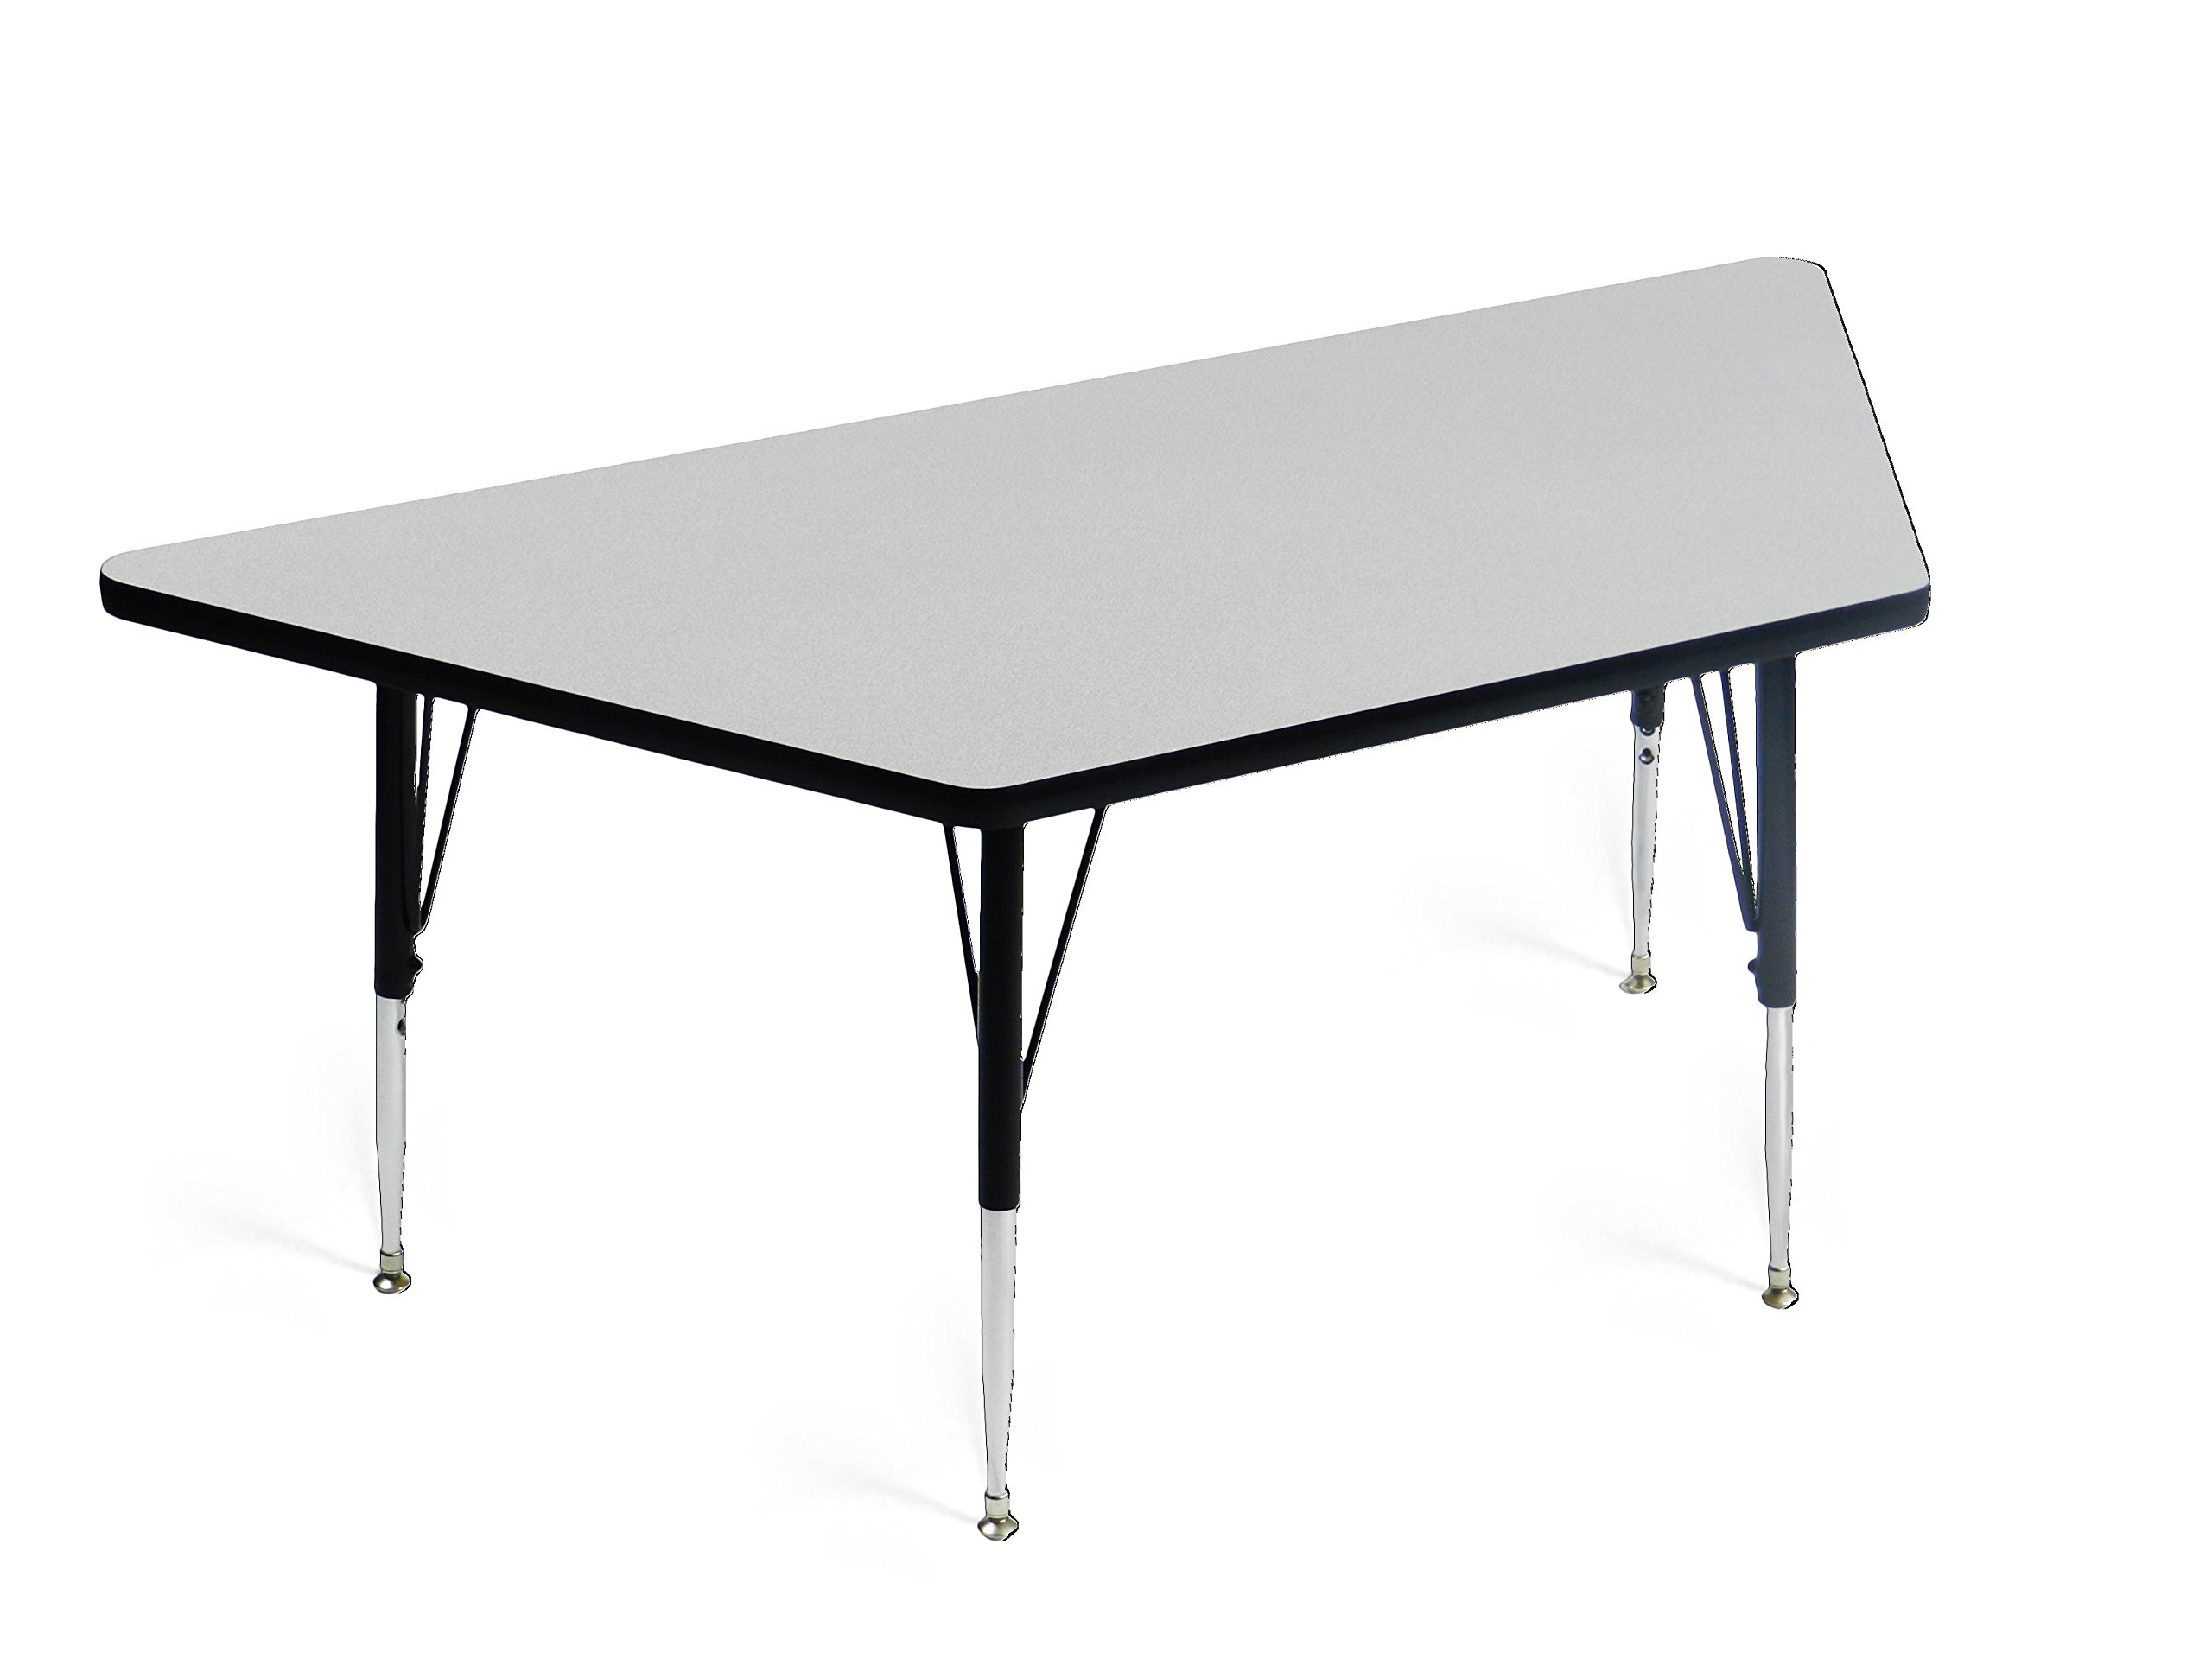 Correll A3060-TRP-15 Trapezoid Top Activity Table, 30''x60'', Gray Granite by Correll